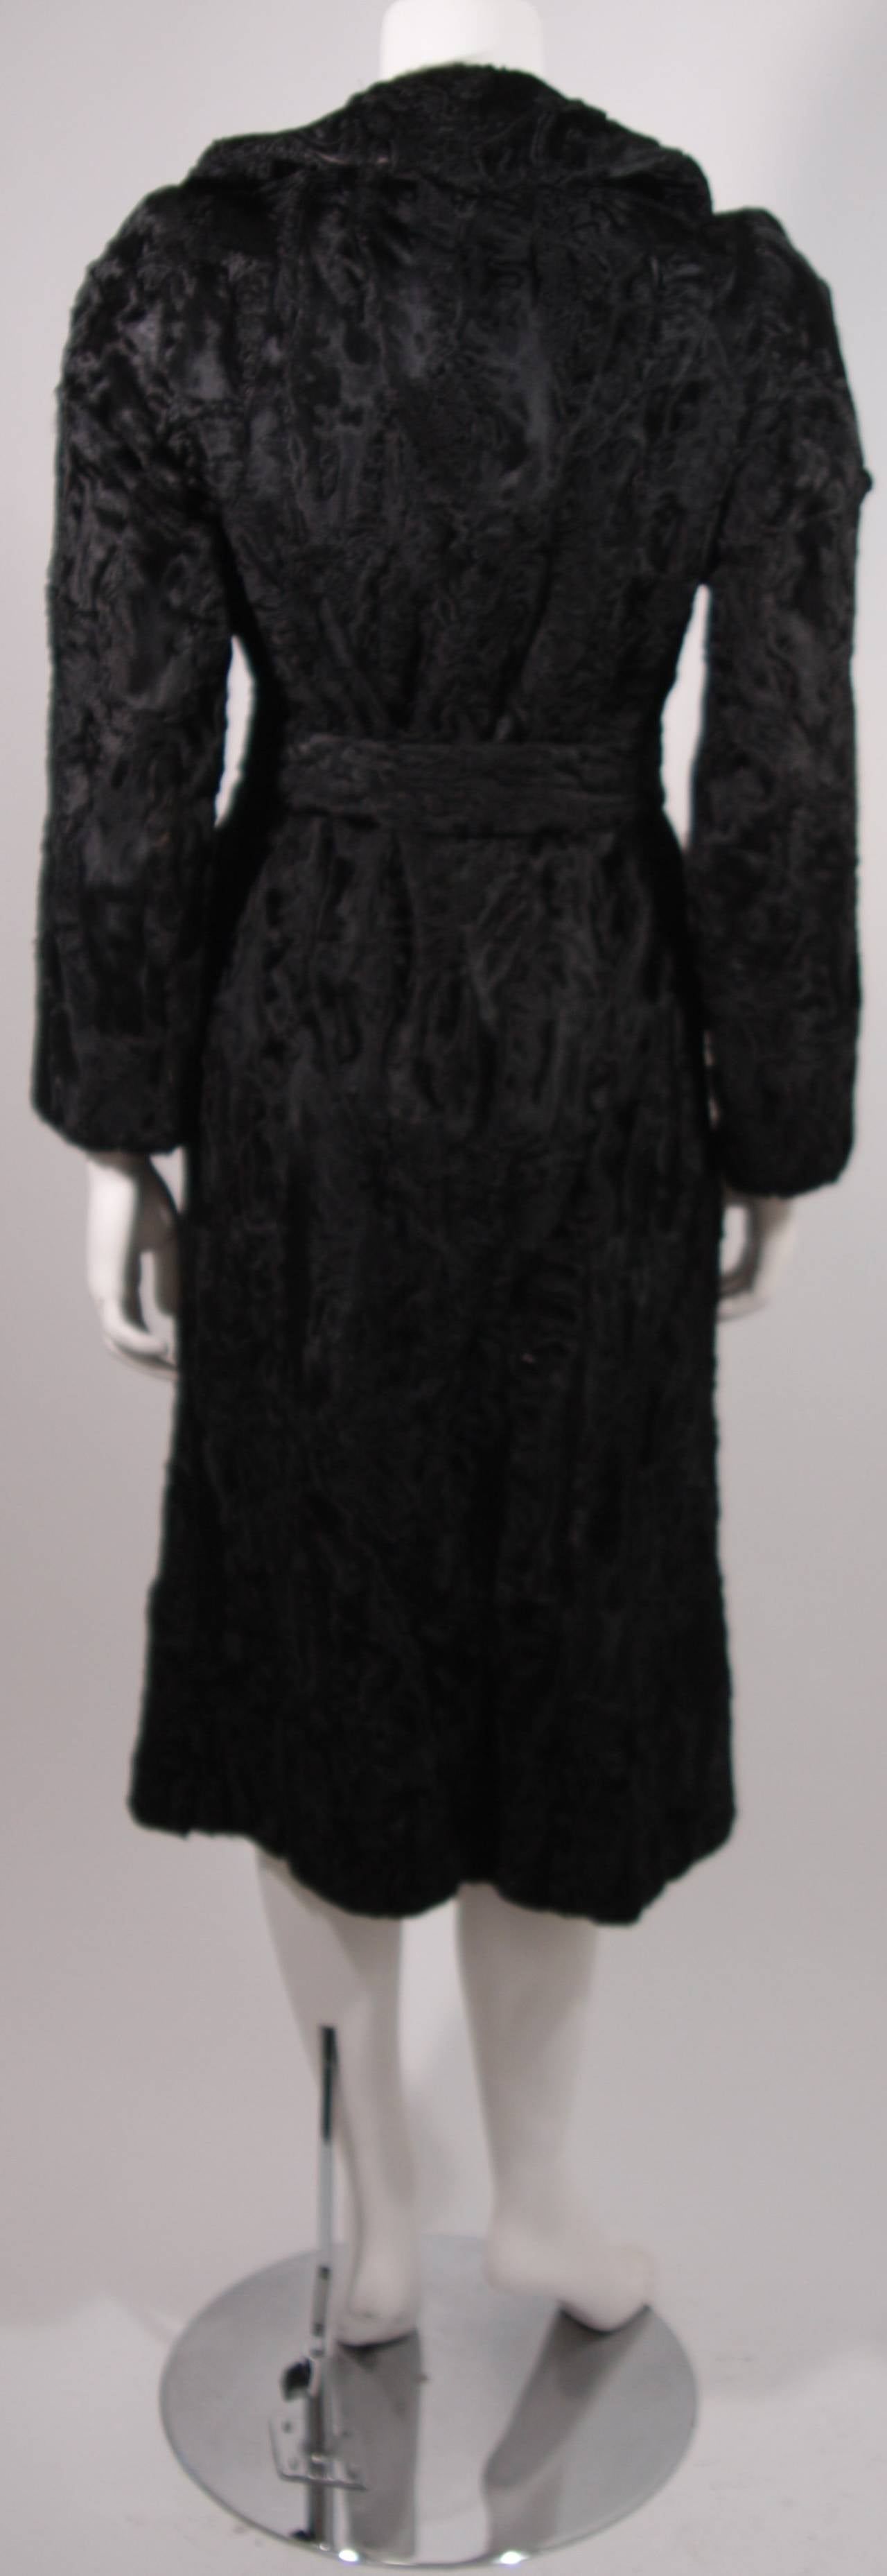 Donald Brooks Black Russian Broadtail Coat with Belt For Sale 2